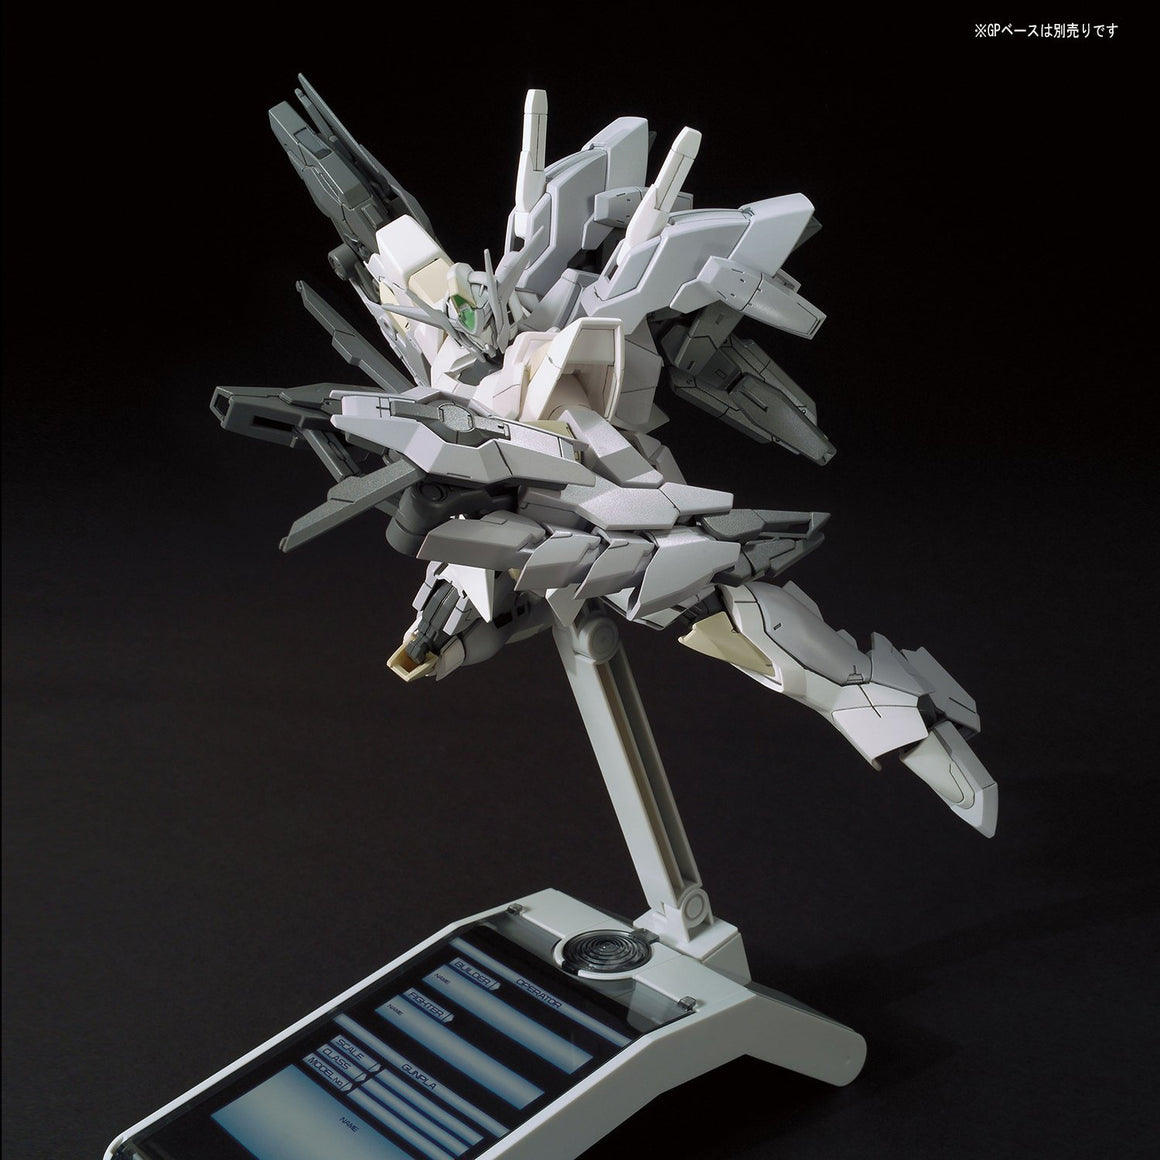 Gundam Build Fighters: Reversible Gundam 1:144 Scale Model Kit